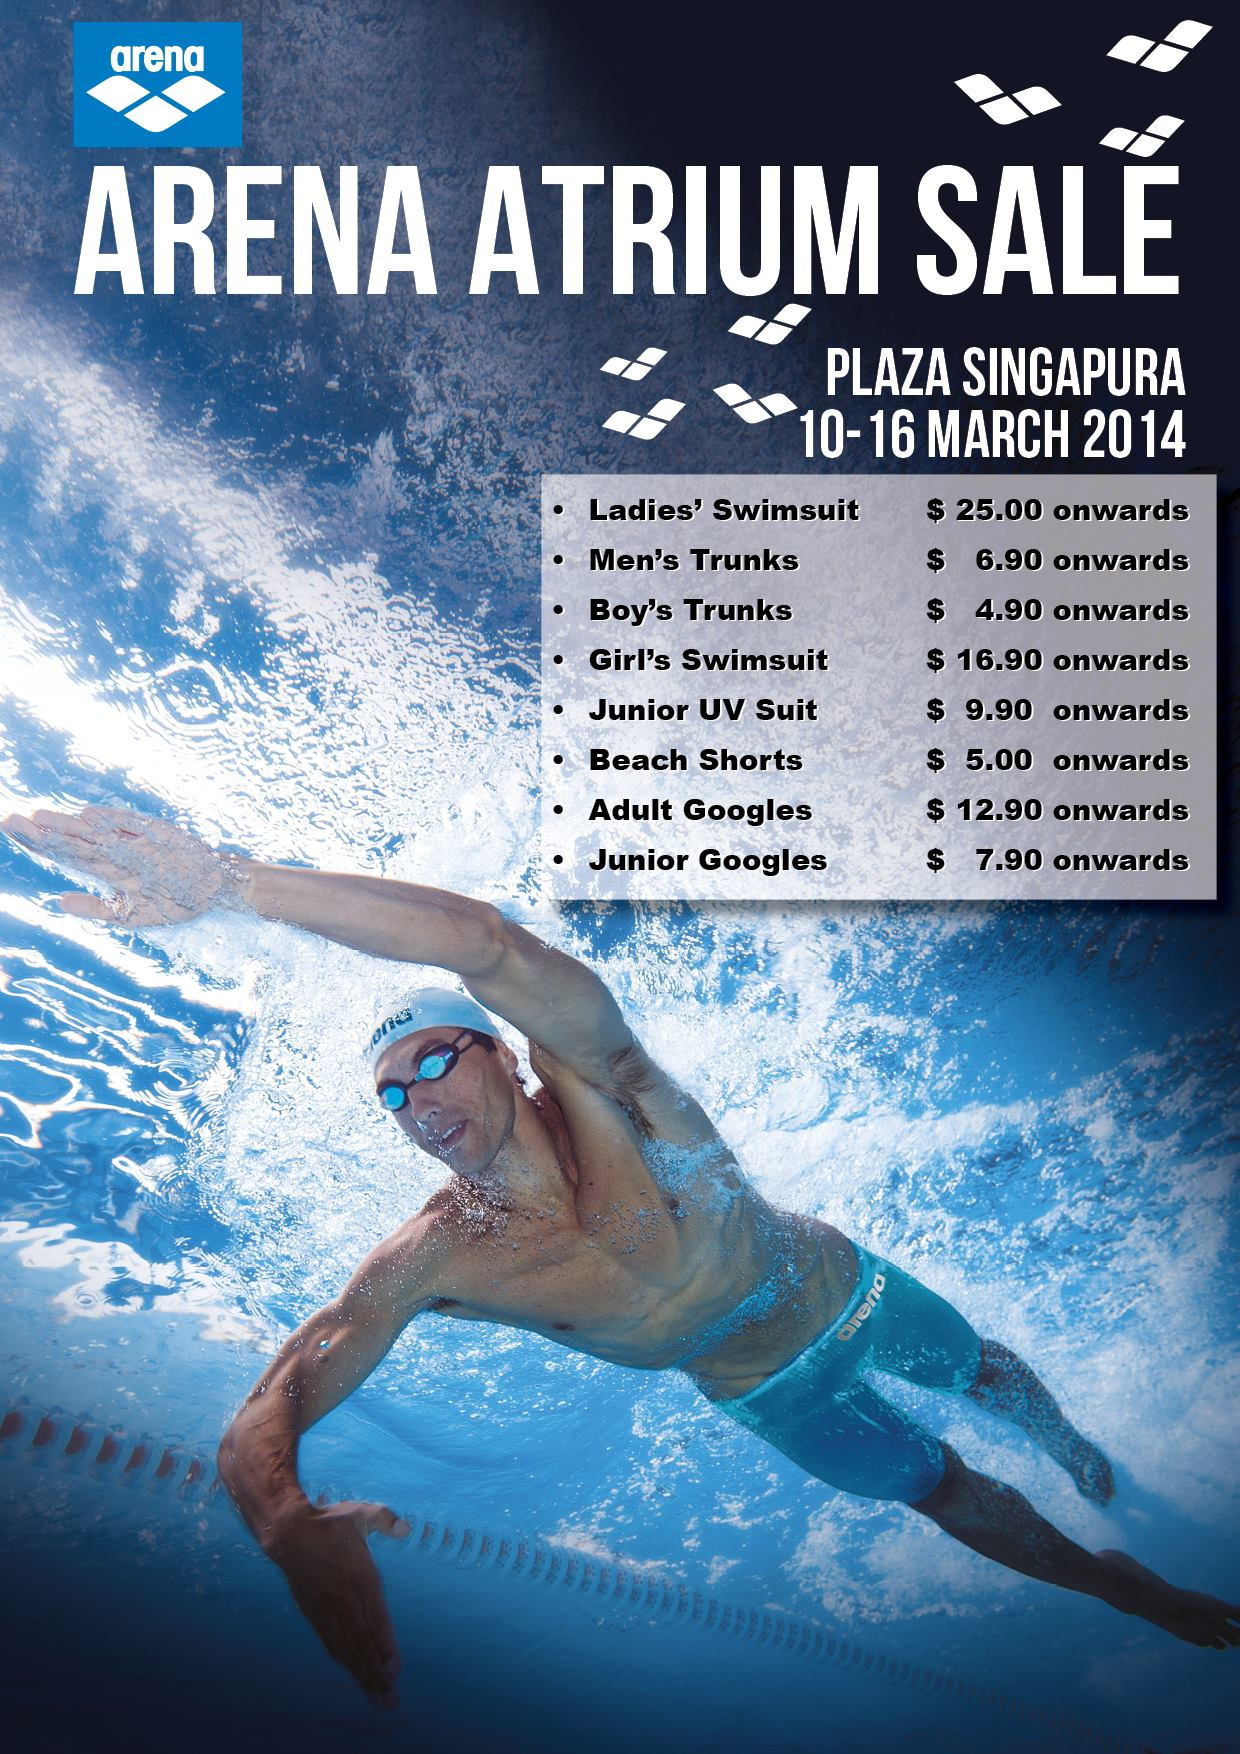 Arena Atrium Sale March 2014 @ Plaza Singapura: Swimwear From $5 Onwards